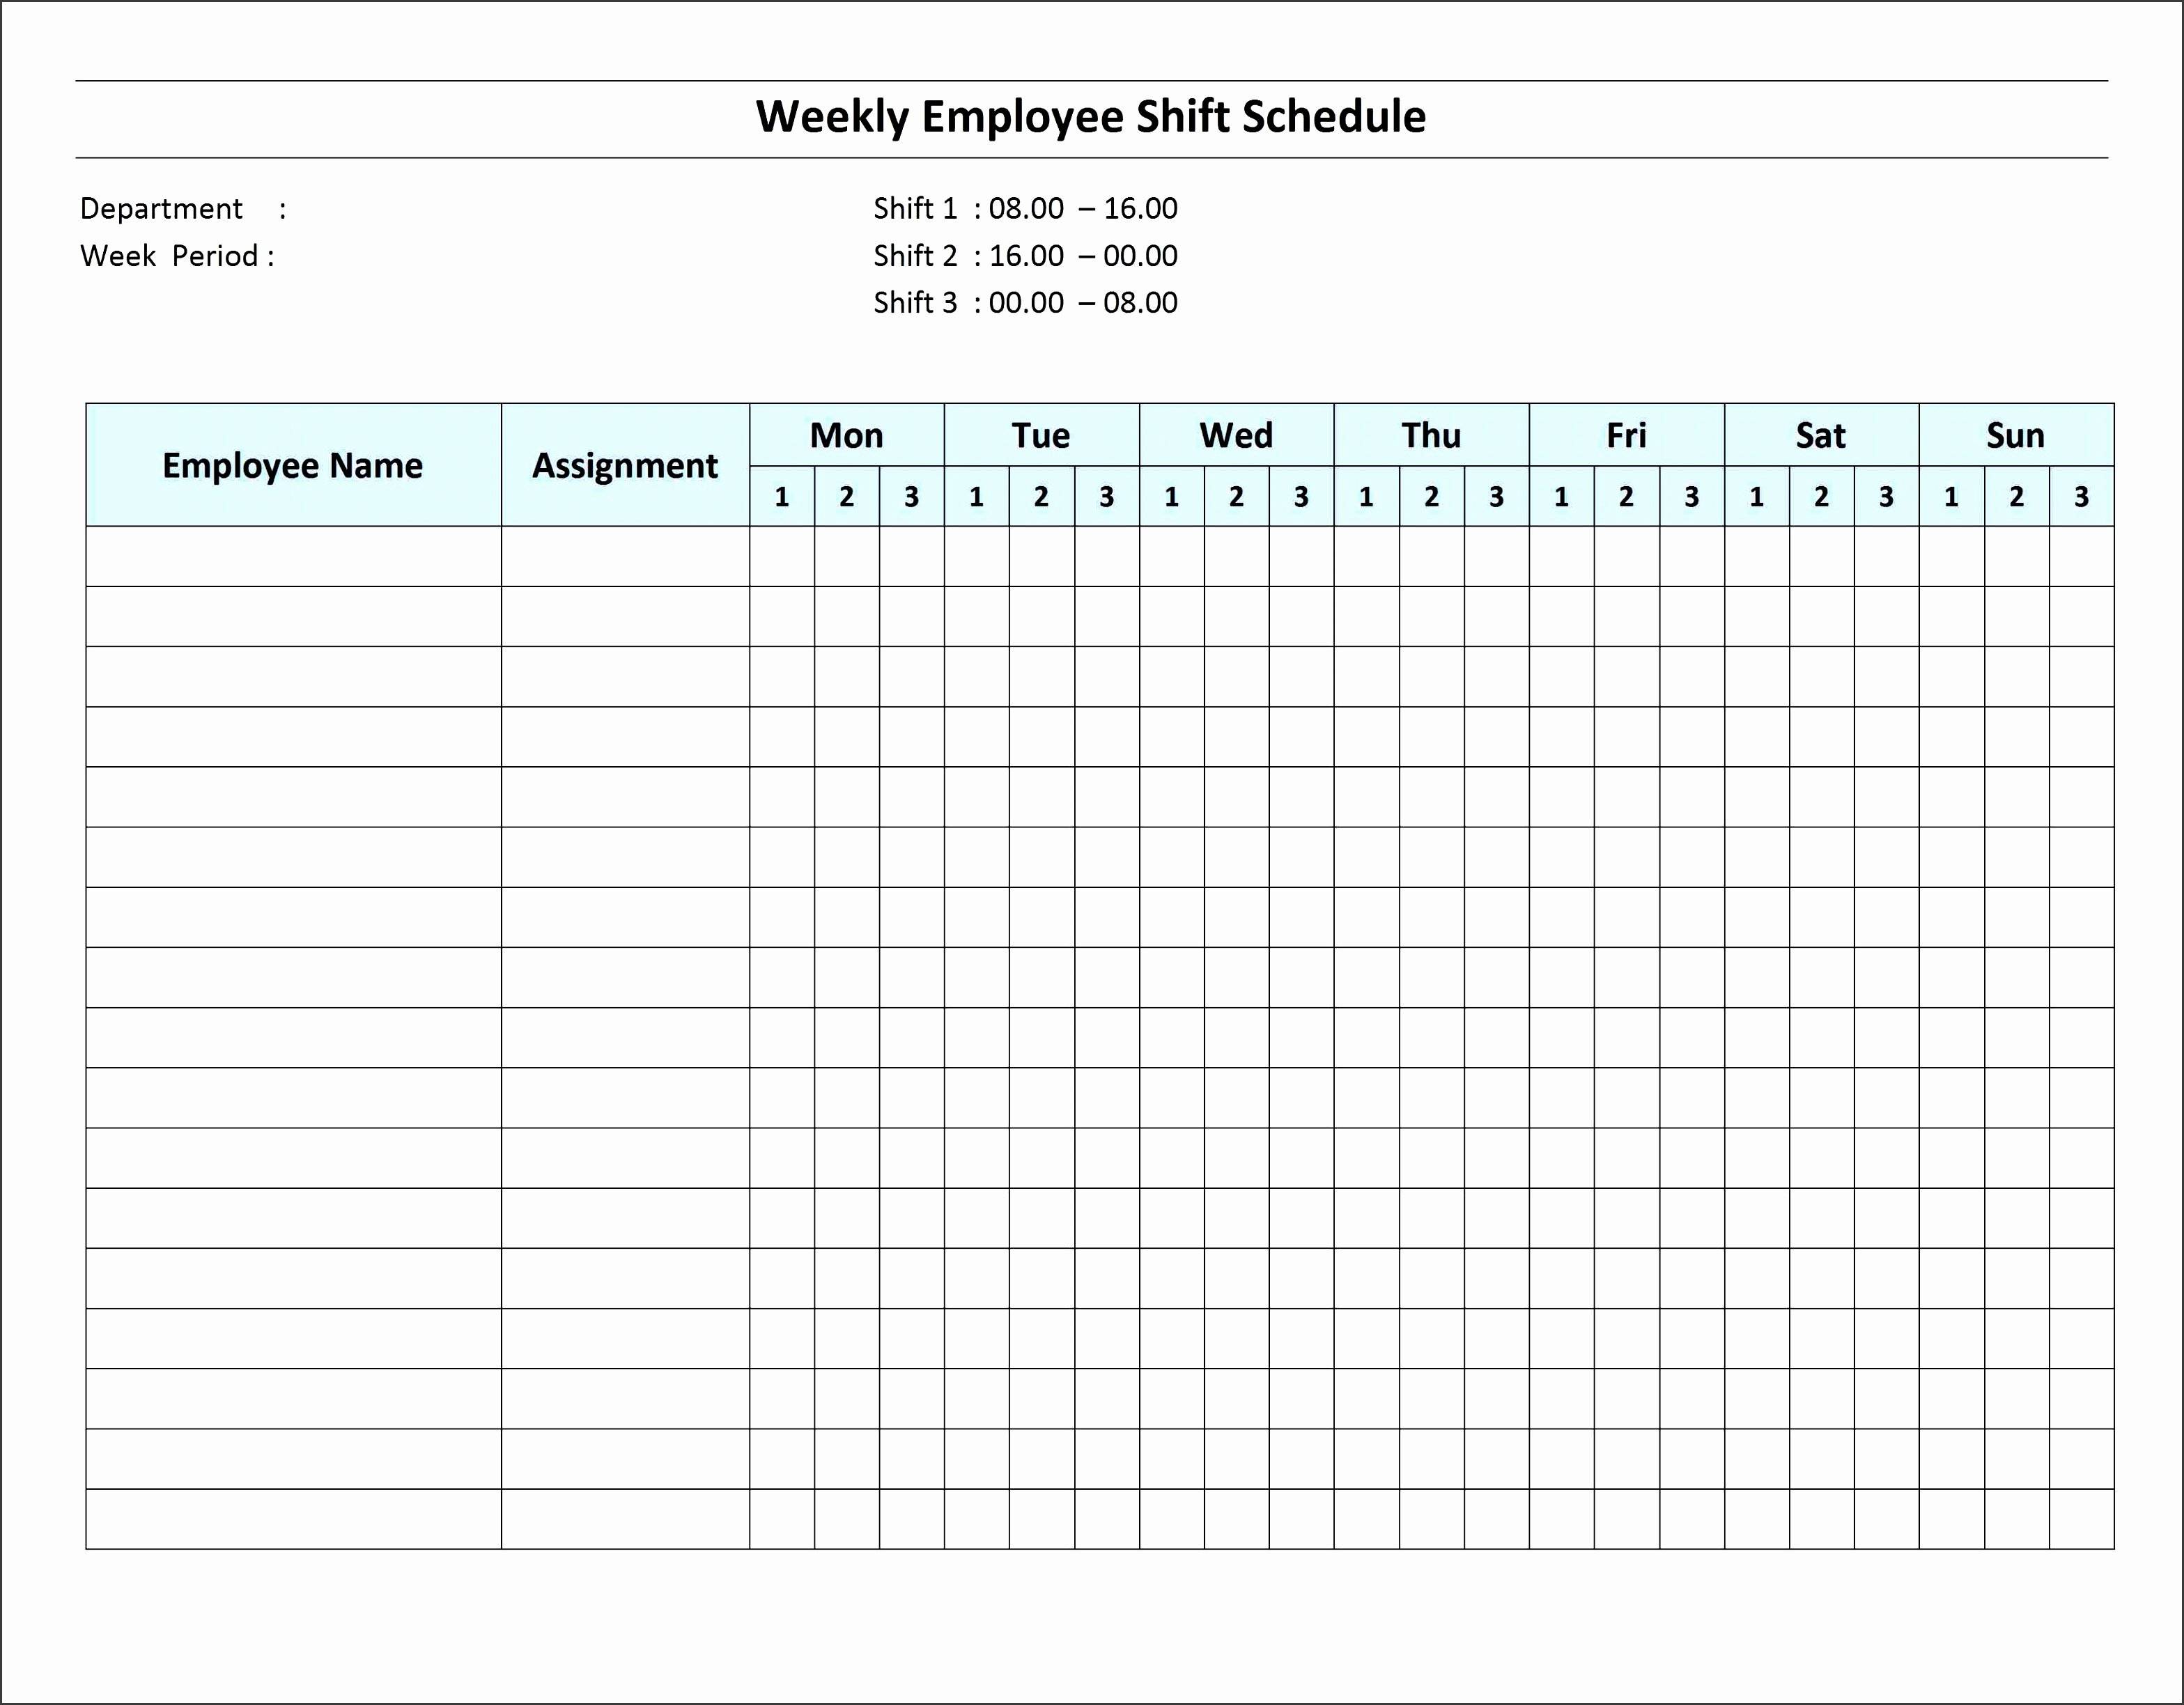 Monthly Shift Schedule Template New 6 Excel Daily Work Schedule Sampletemplatess